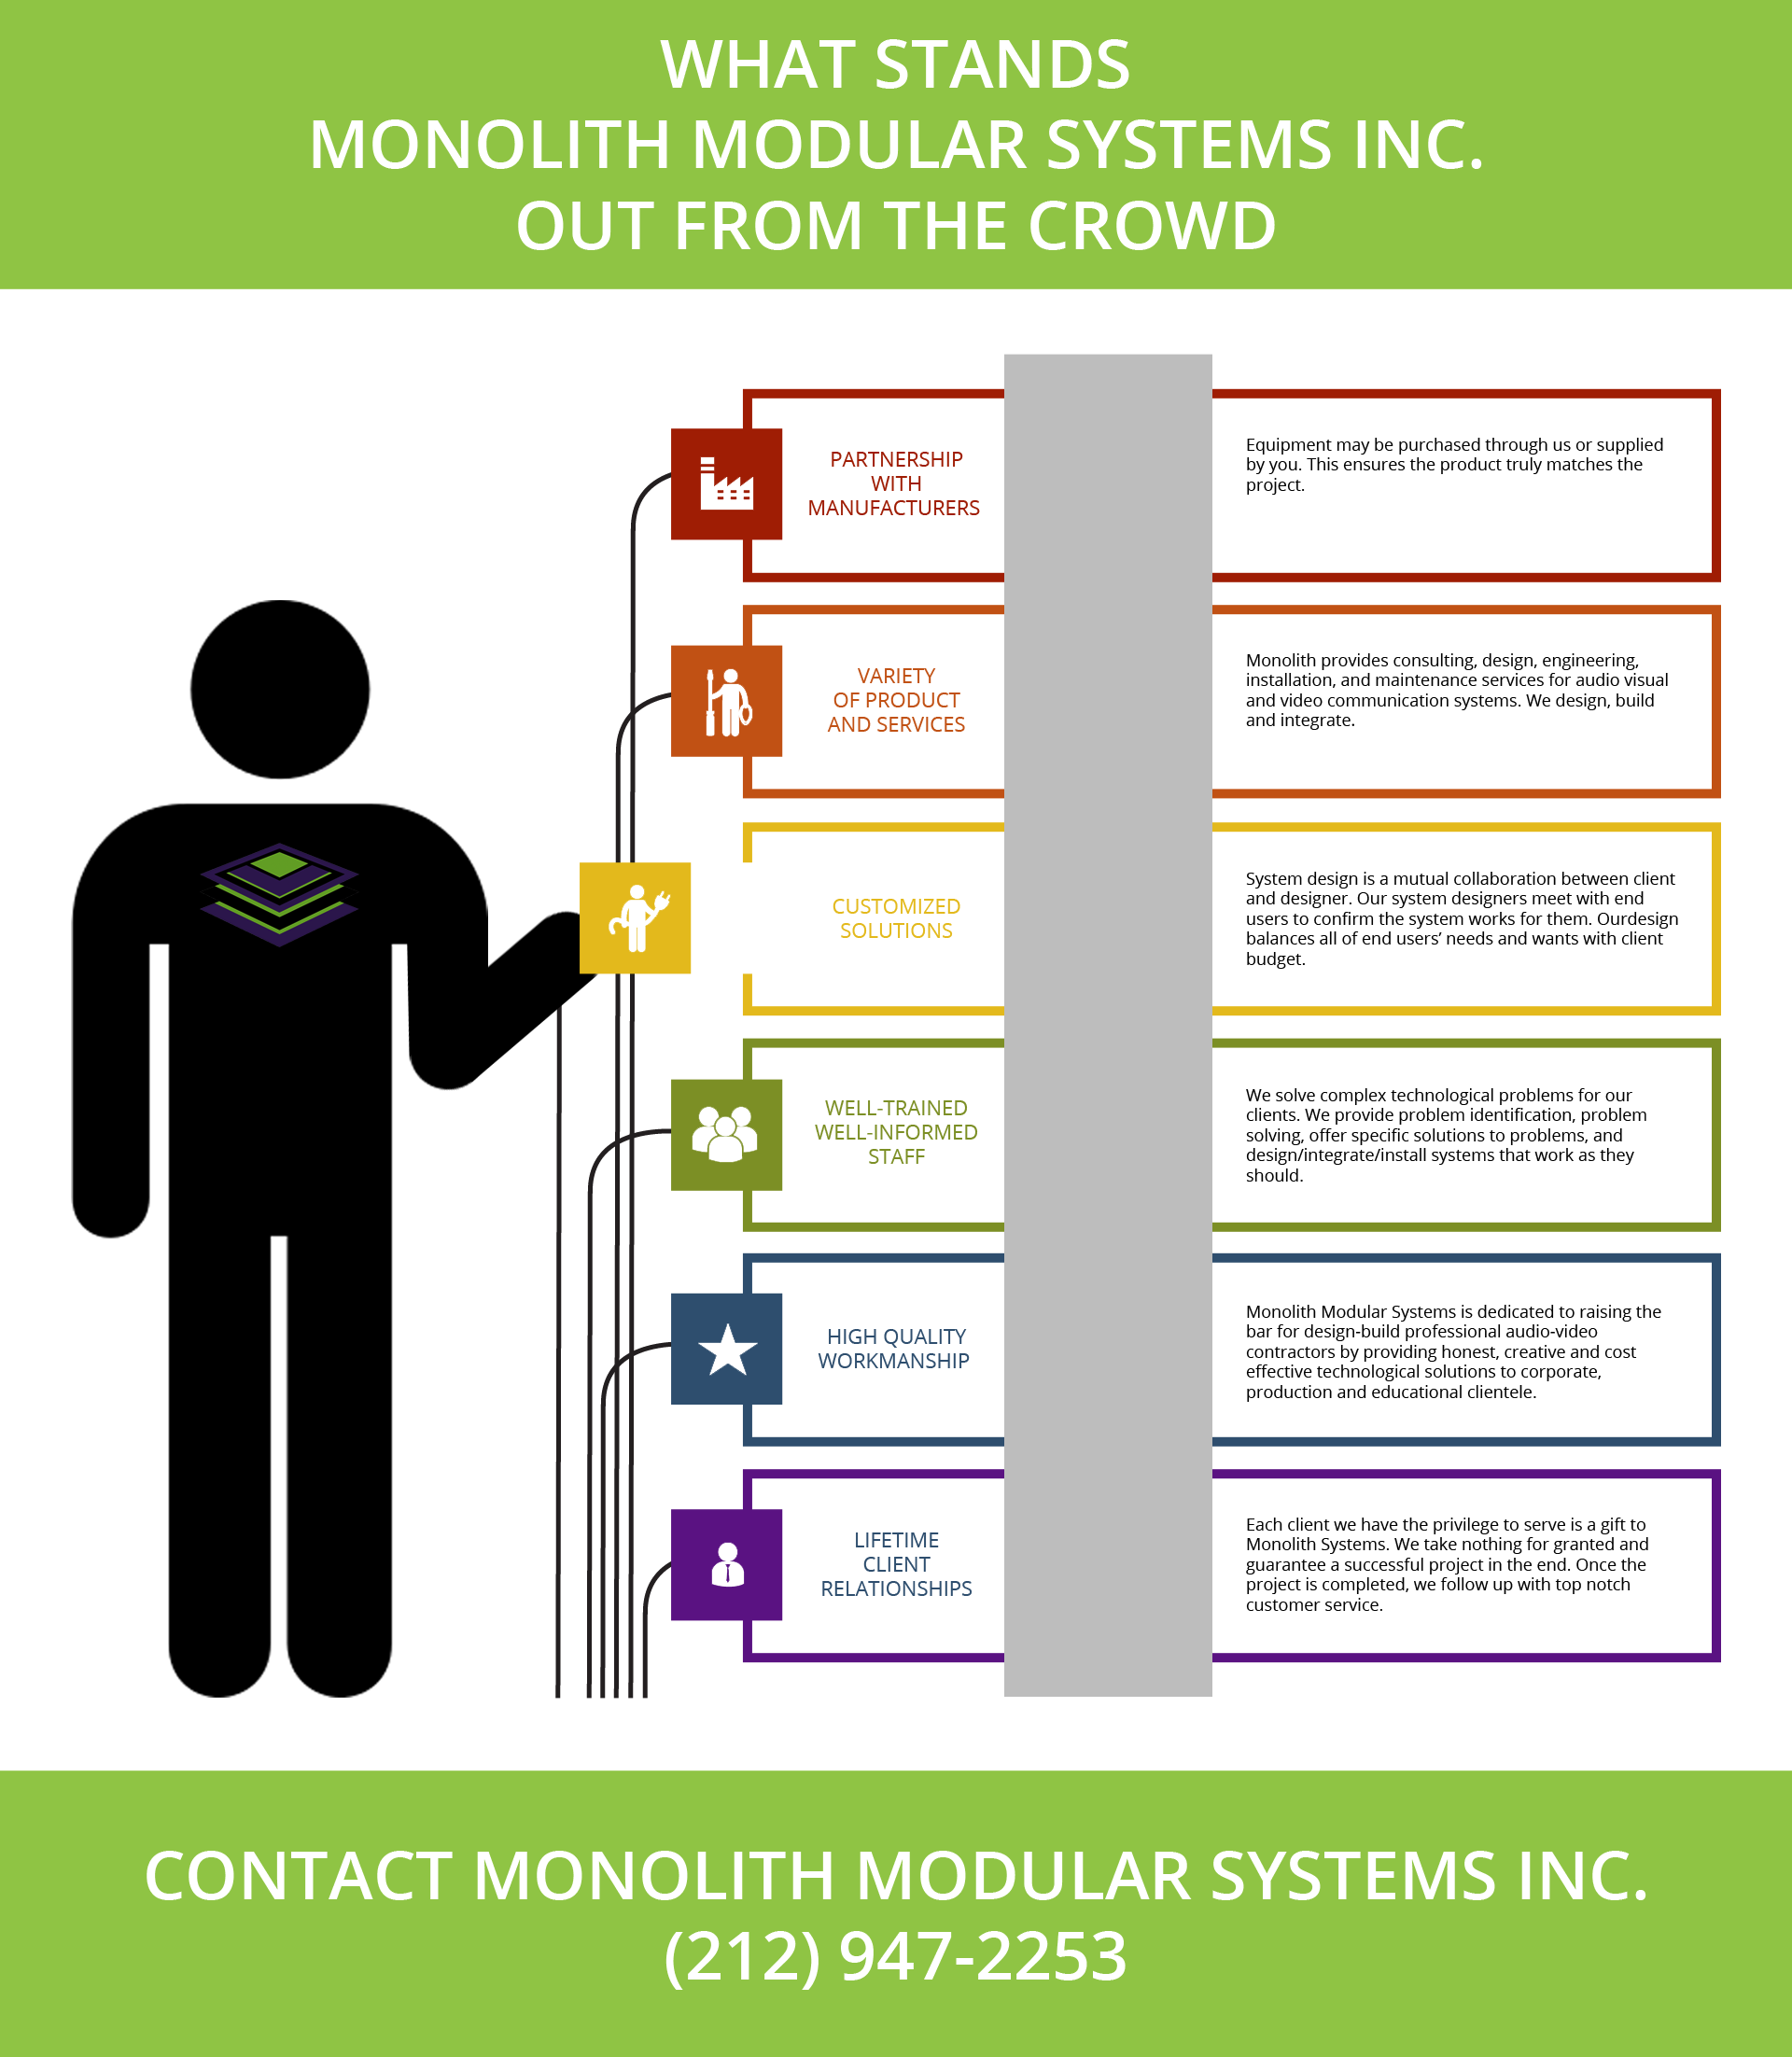 Monolith Modular Systems is the New York Area Premier Design-Build Systems Integrator